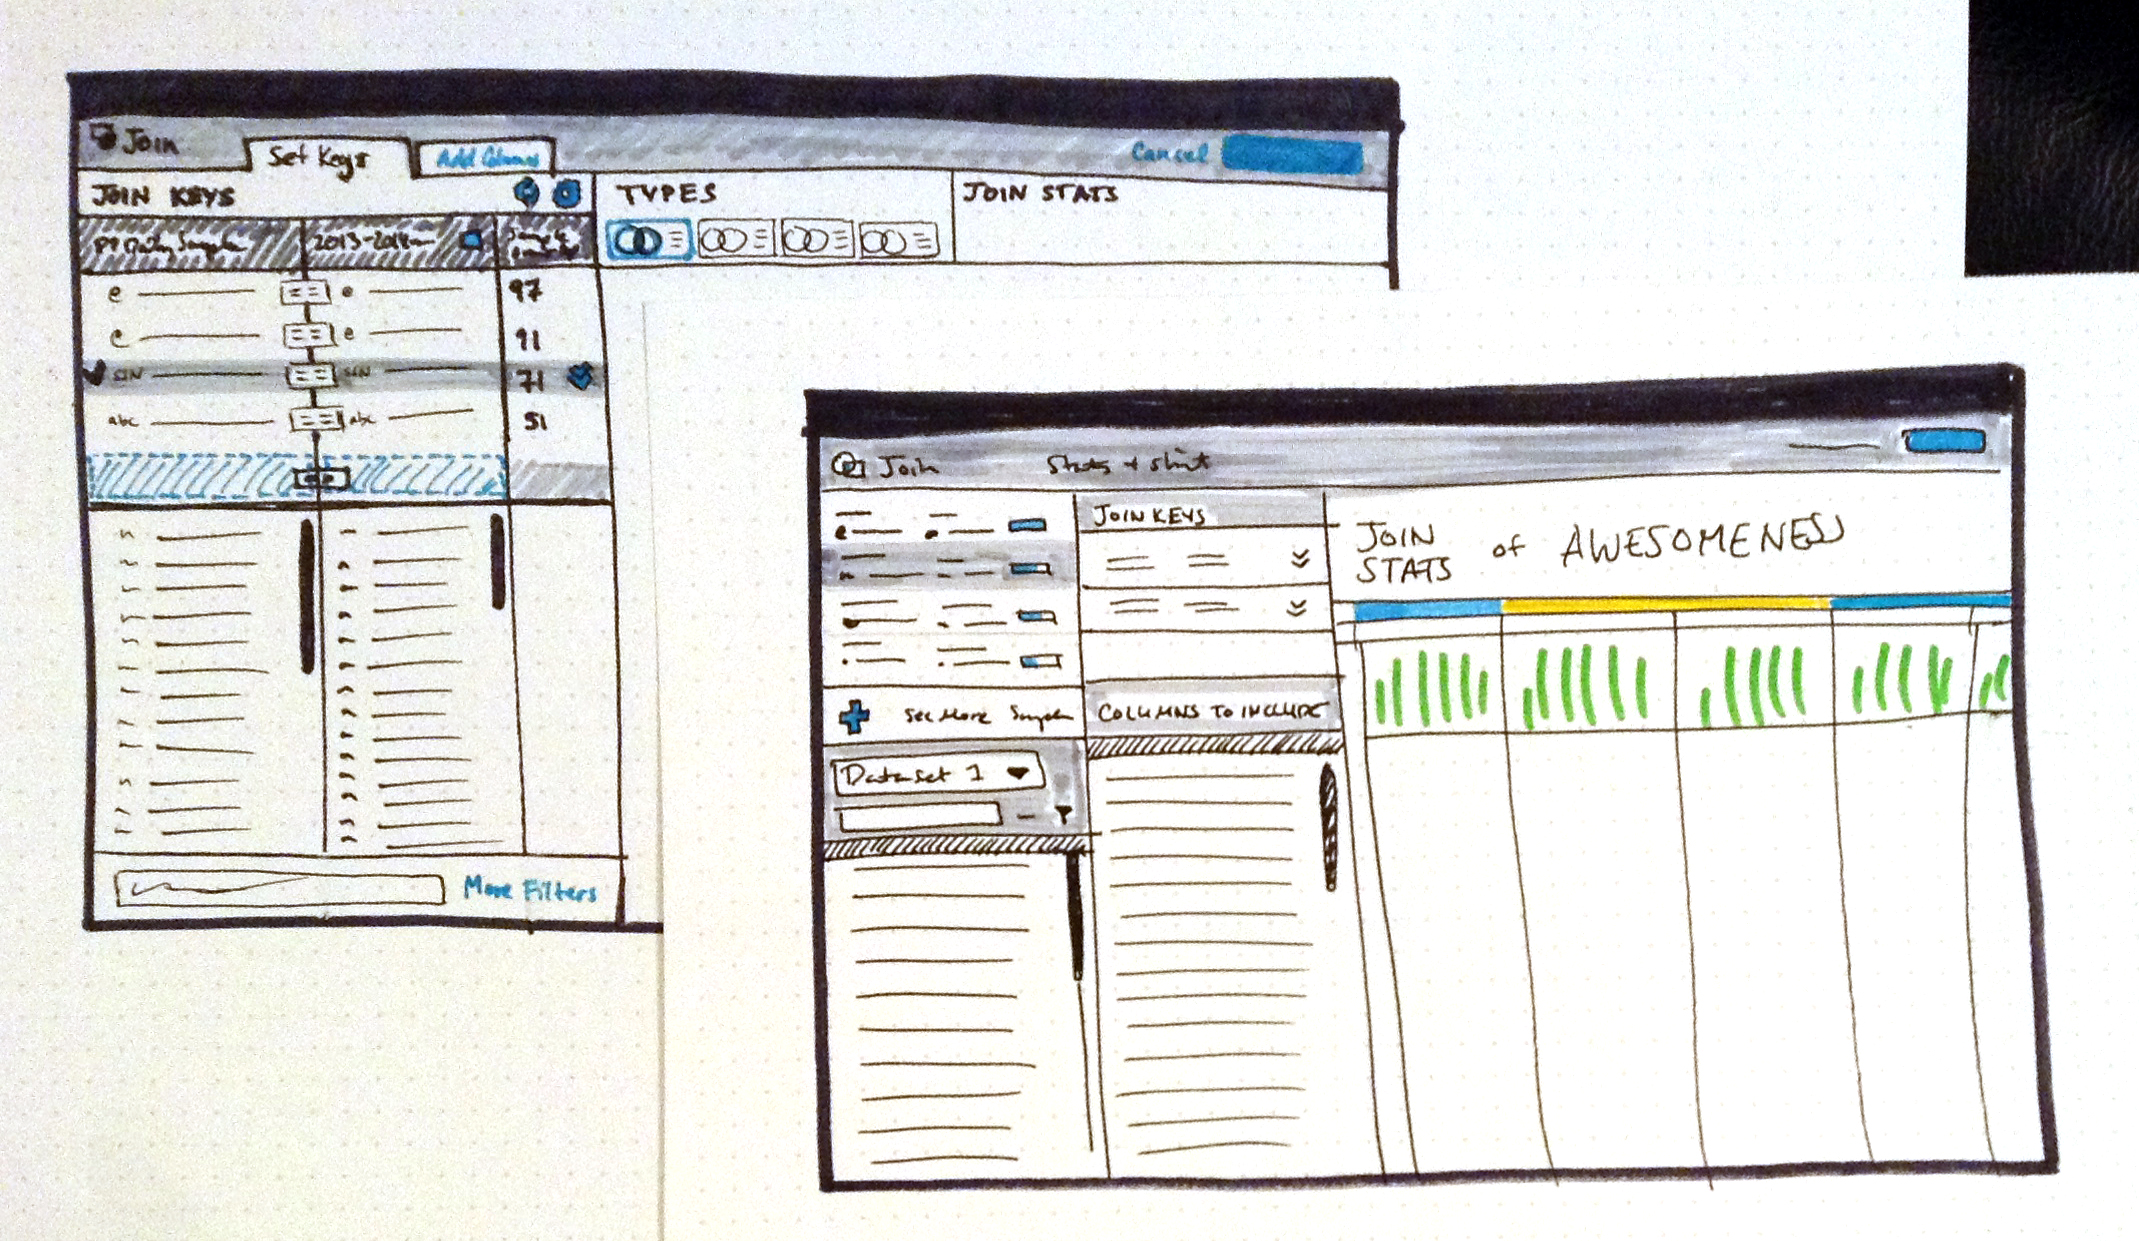 Higher fidelity UI sketches